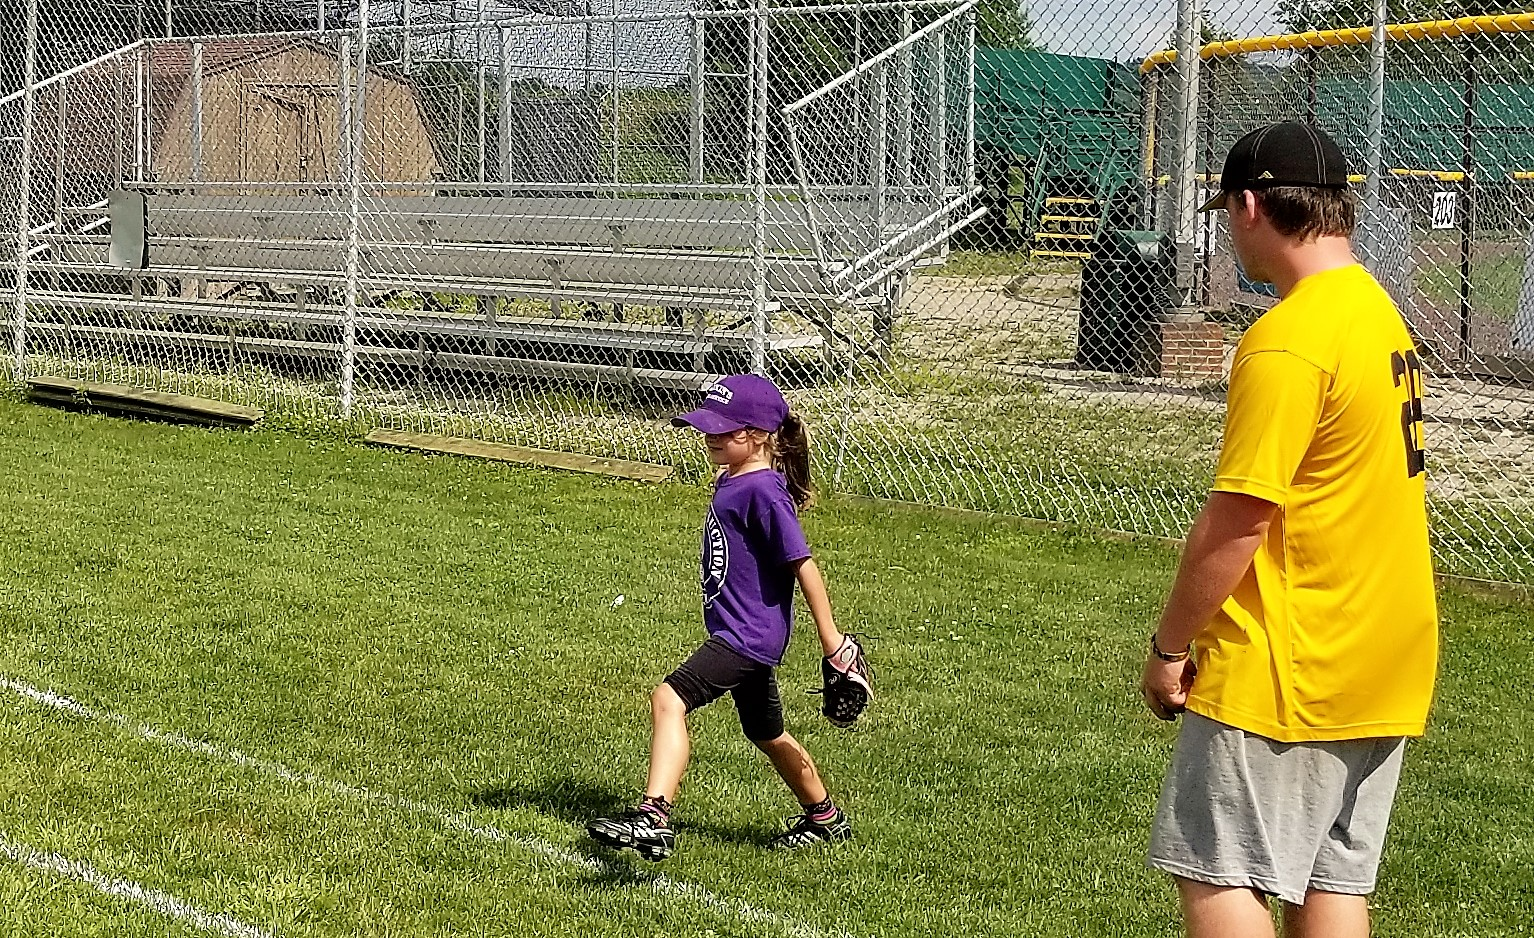 The Potter Pirates also held a baseball clinic at Weaver Park for area children.